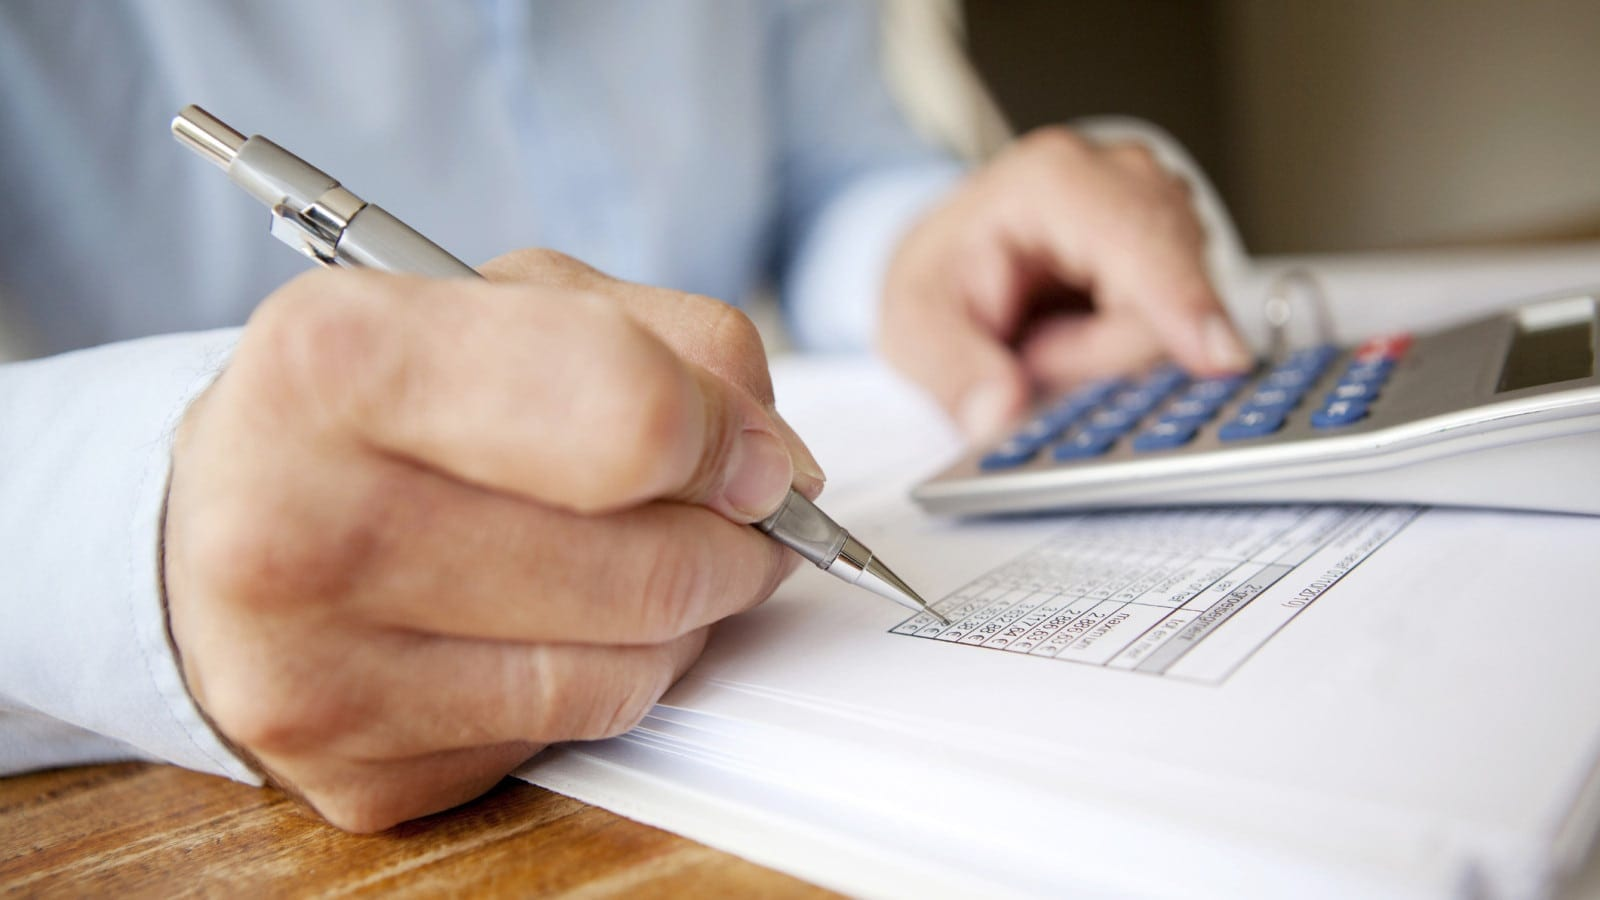 Man Working With A Calculator Stock Photo